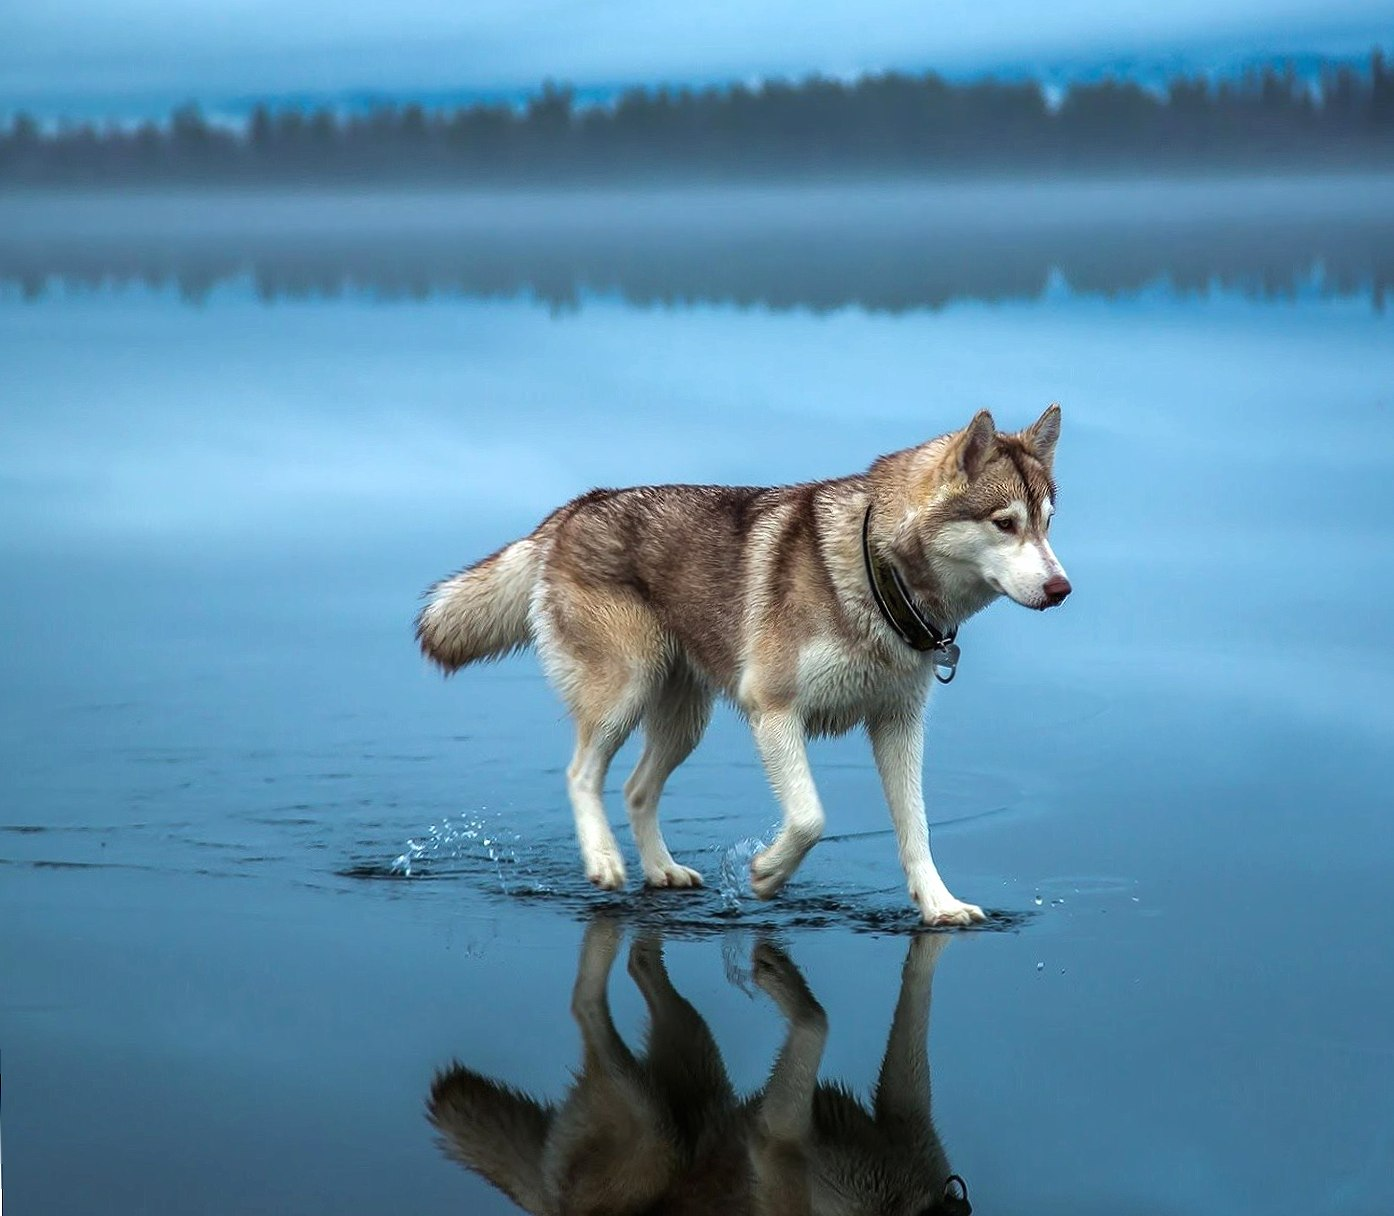 Dog walking on water wallpapers HD quality